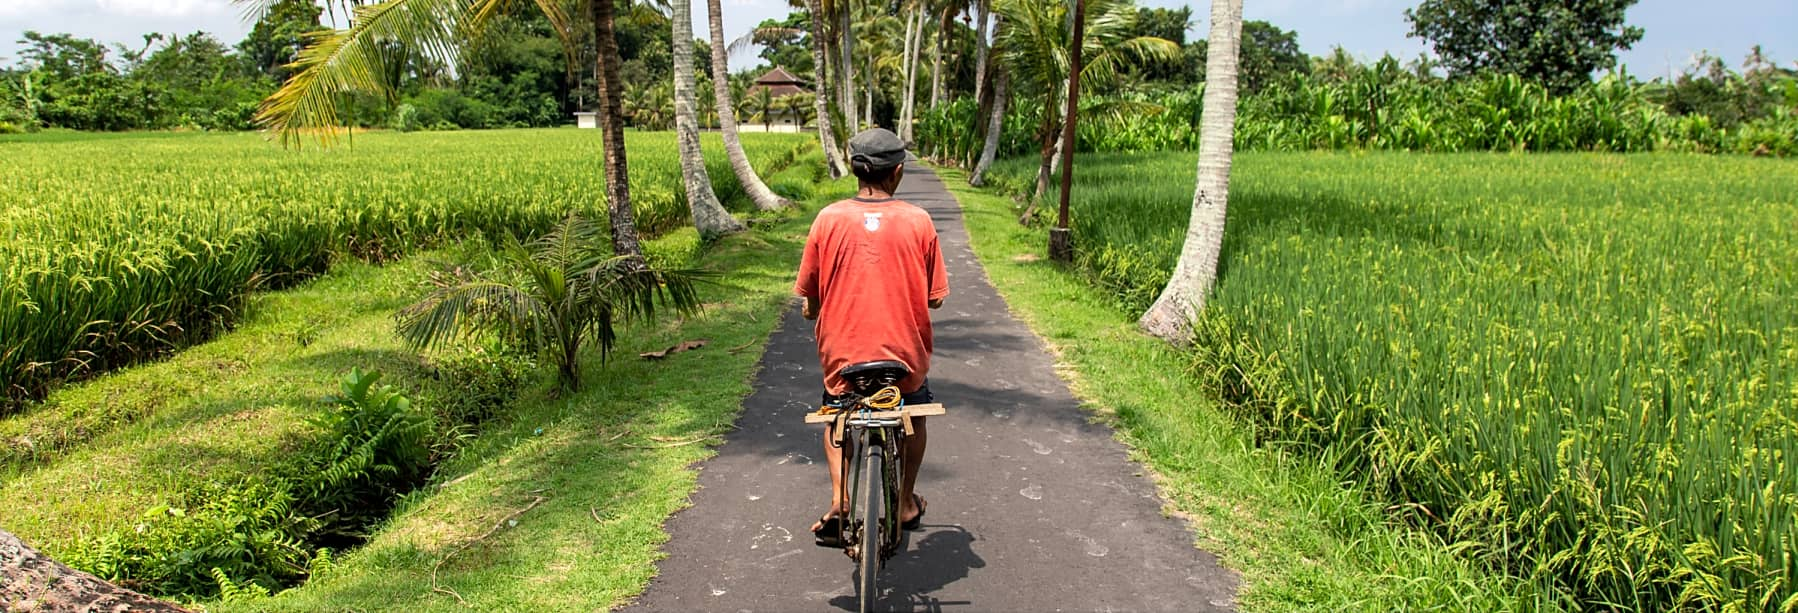 Ubud Nature & Village Bike Tour (Morning / Afternoon) – Half Day gallery